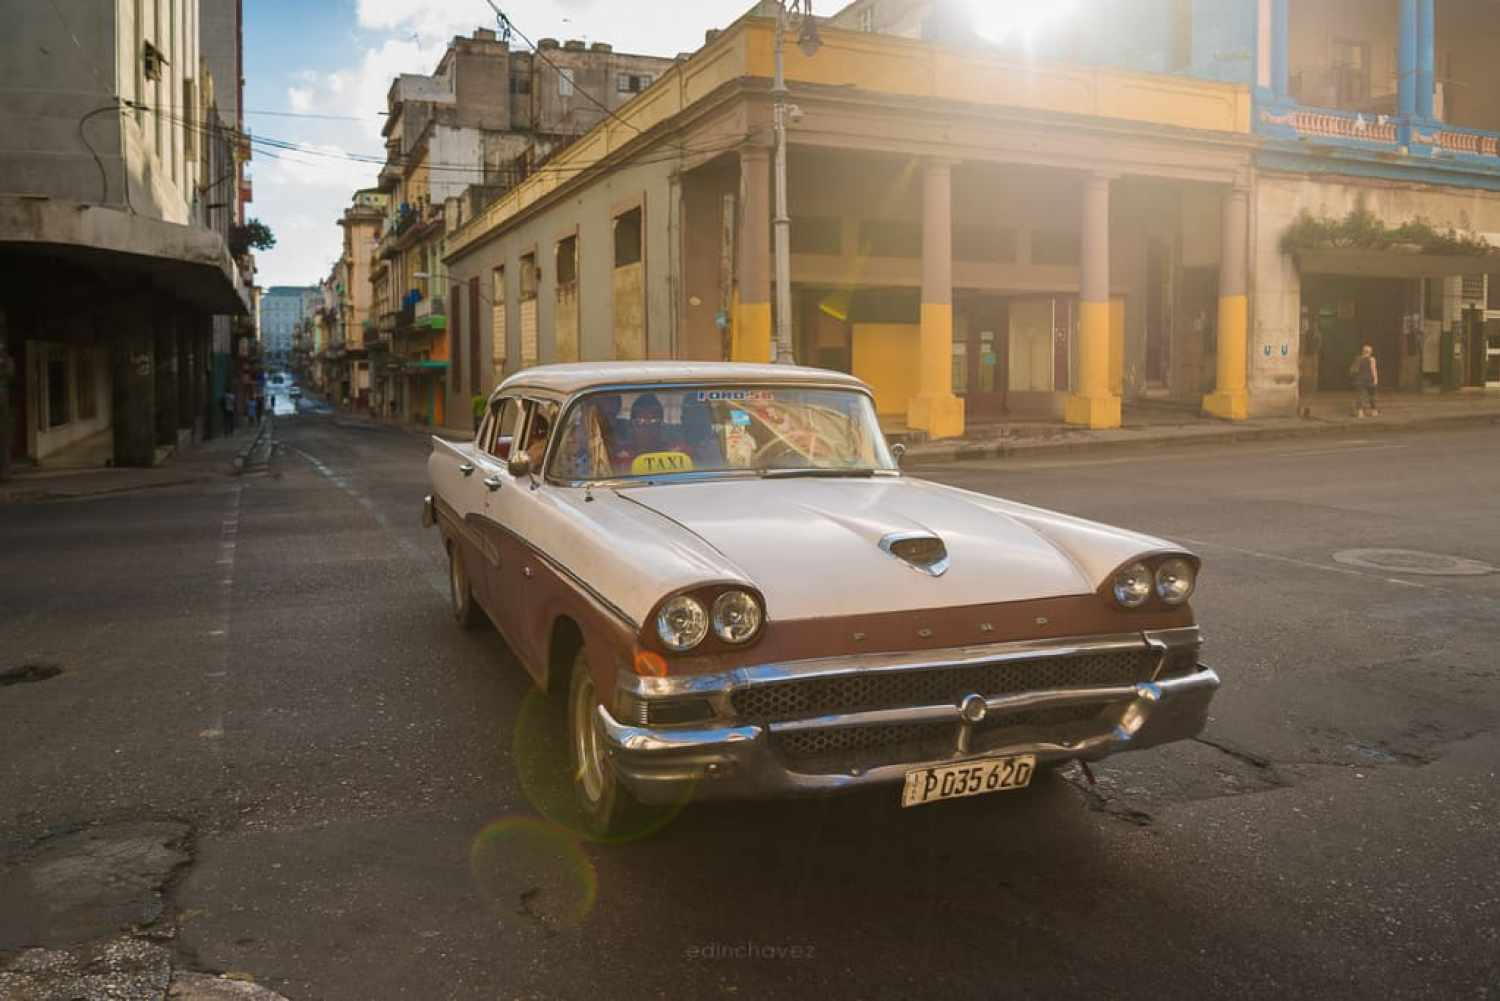 Photos of Havana Cuba That Will Make You Want to Visit - image  on http://blog.edinchavez.com